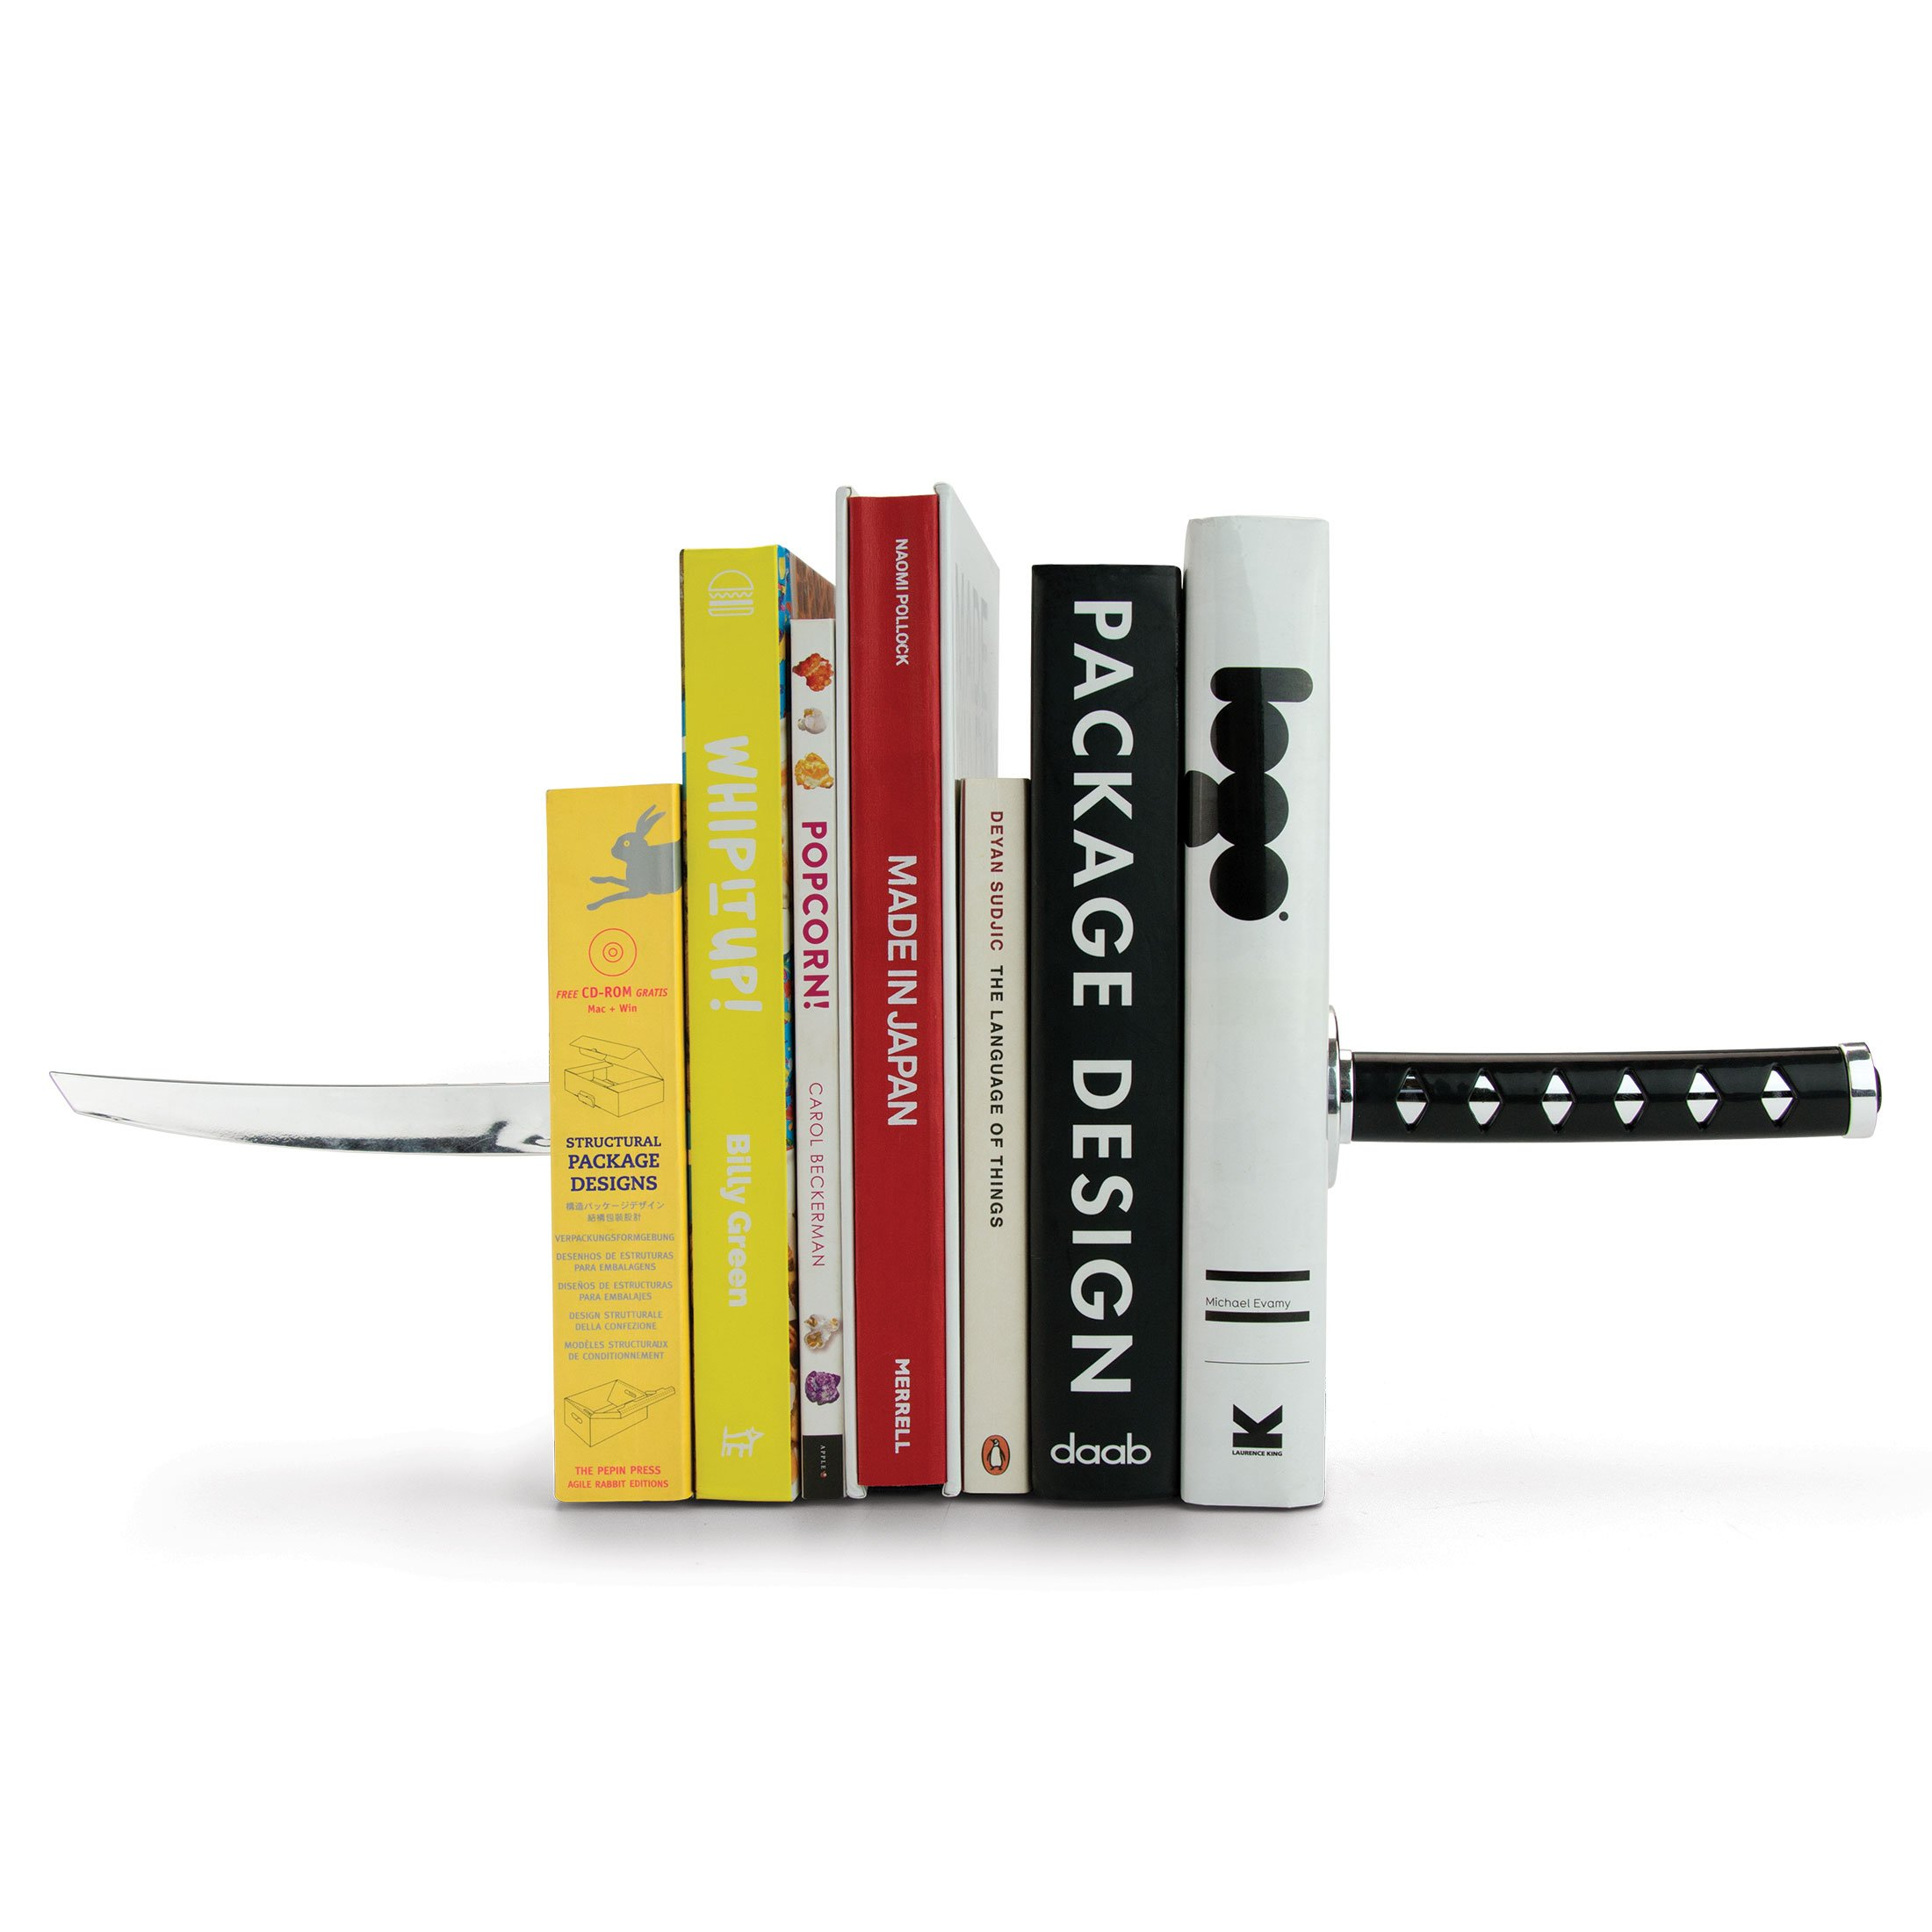 Mustard Katana Bookends I Metal Bookends I Magnetic Bookends With Hidden Brackets I Bookends For Shelves I Unique Bookends I Decorative Bookends I Funny Bookends I Katana Samurai Sword Black